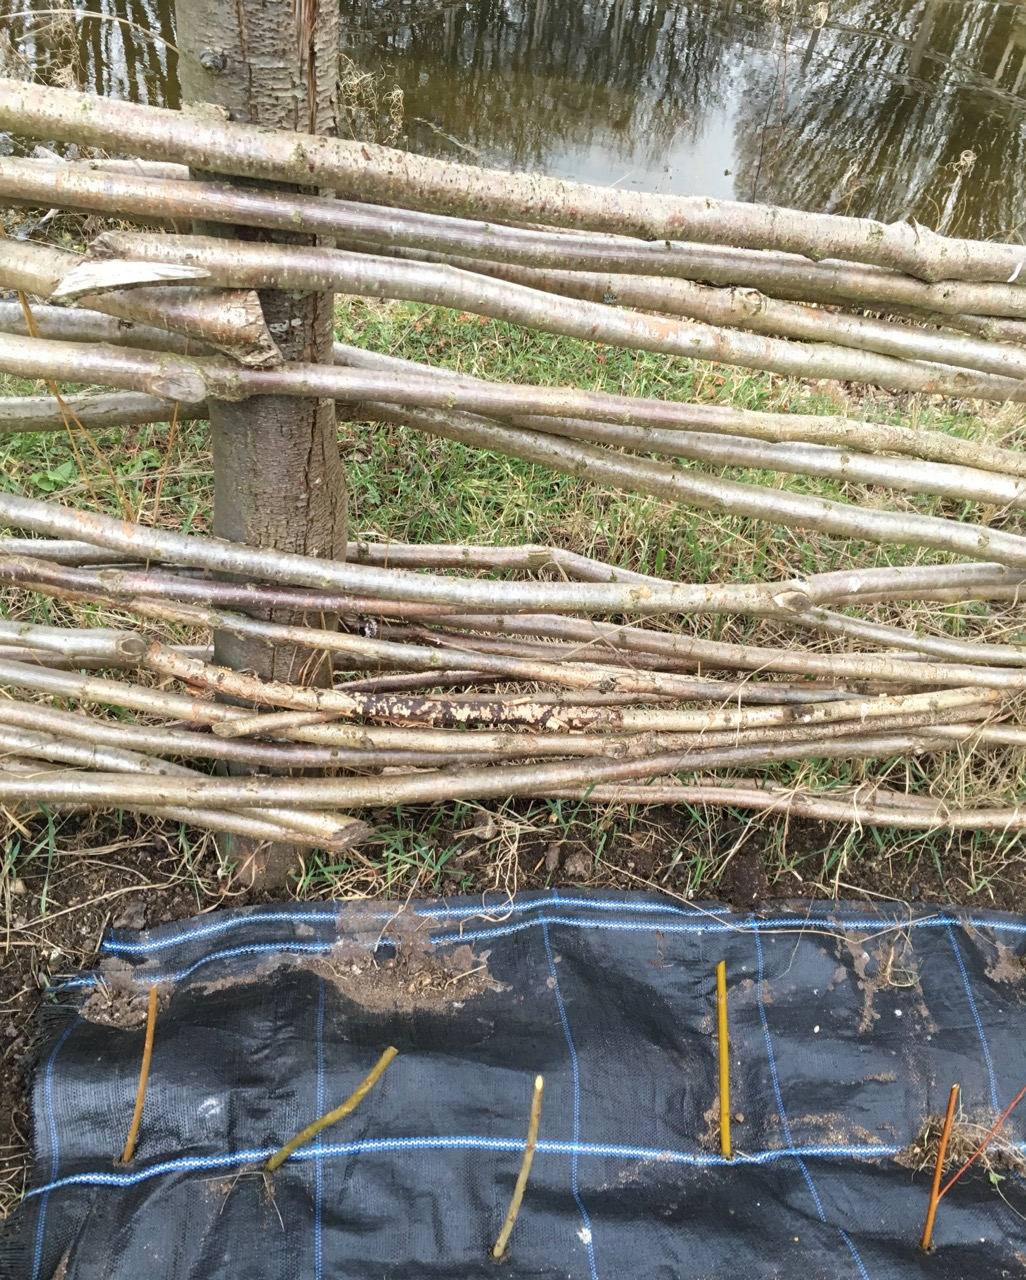 The new 'sticks' are cuttings of pretty basketry willow, from a nearby allotment. We hope they will grow into the existing fence around the pond and eventually make a living deciduous hedge around it. They will have some bark mulches soon.